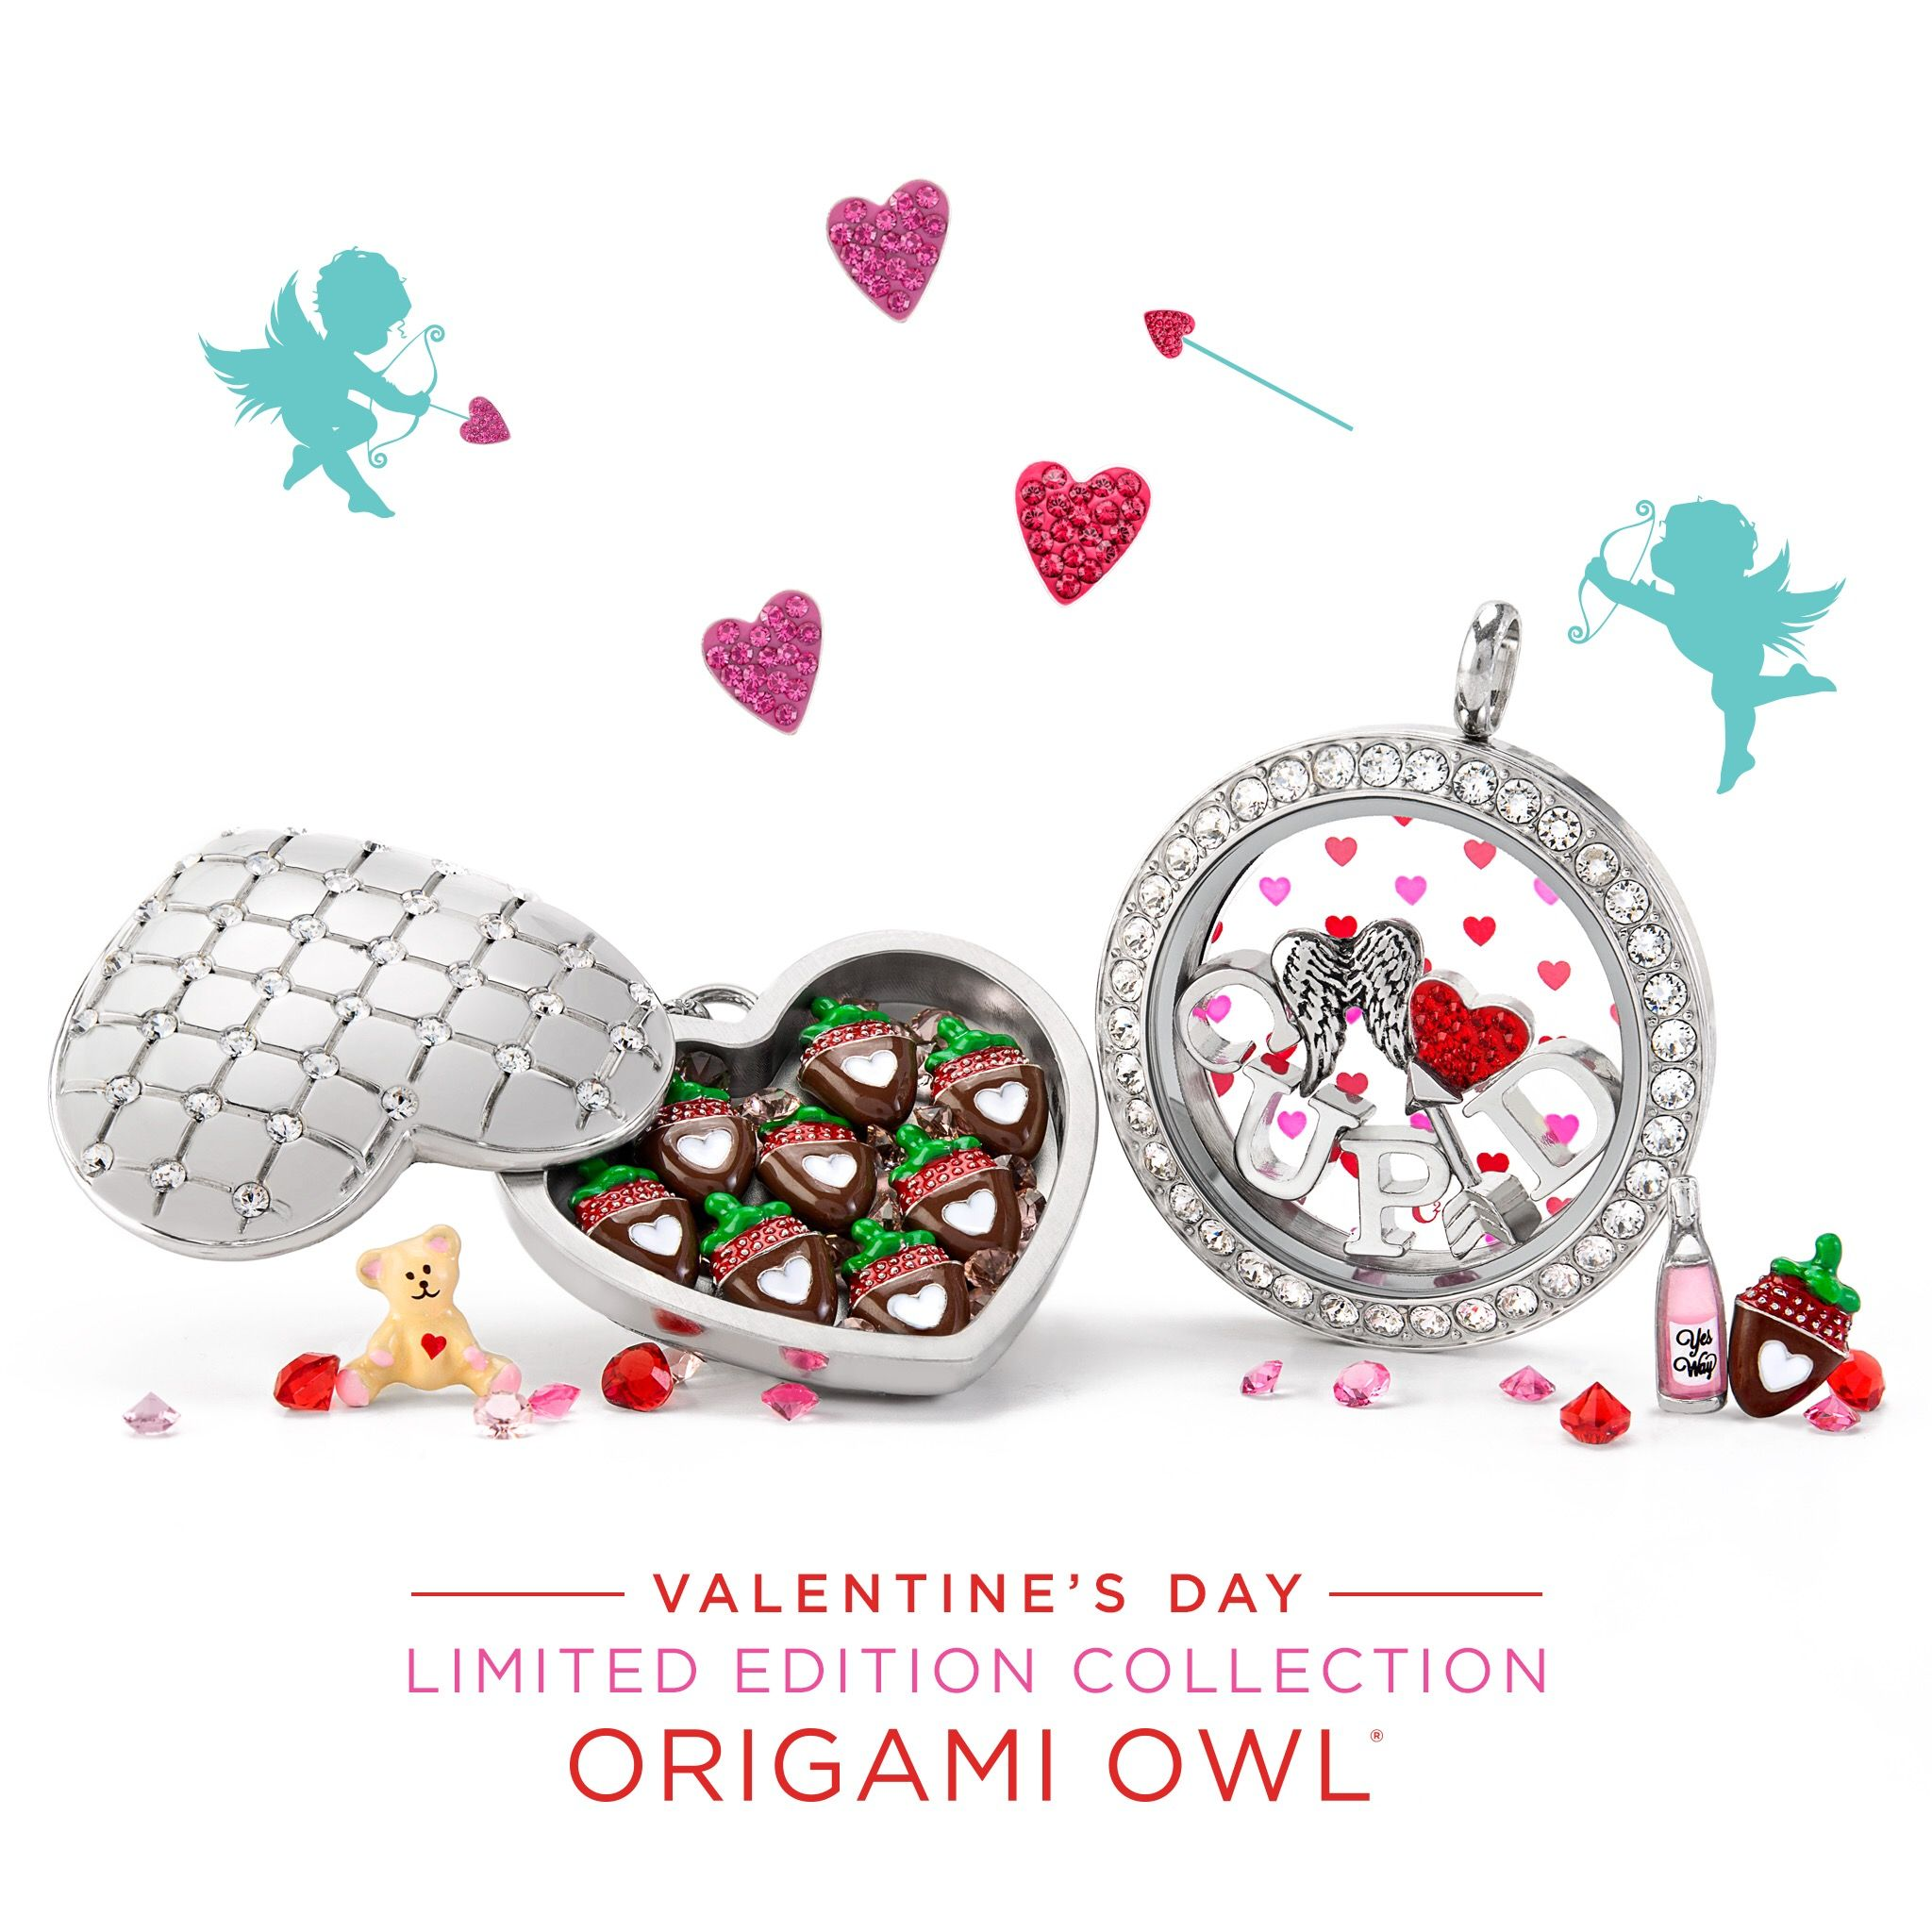 Origami owl valentines day 2018 collection click to see the origami owl is a leading custom jewelry company known for telling stories through our signature living lockets personalized charms and other products jeuxipadfo Gallery